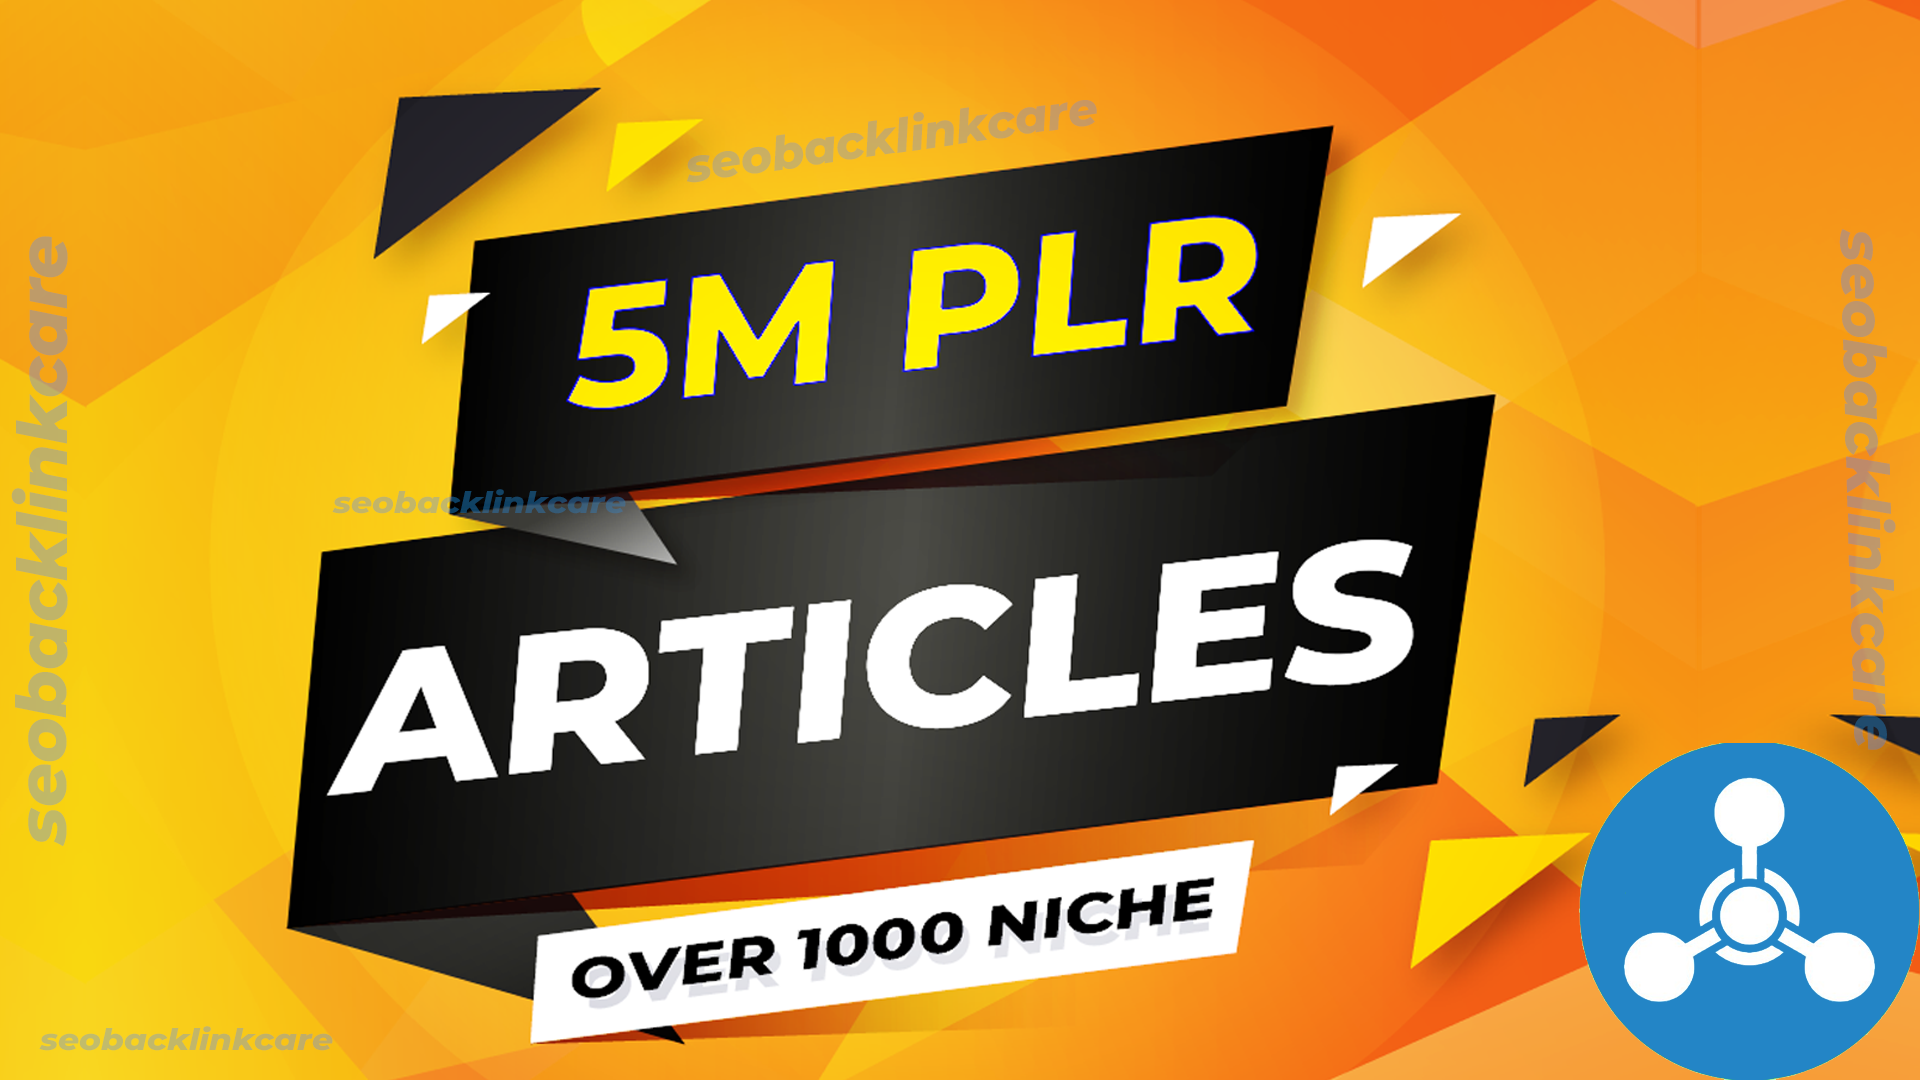 Provide 5 MILLION PLR articles collection over 1000 niches for Website/blog post